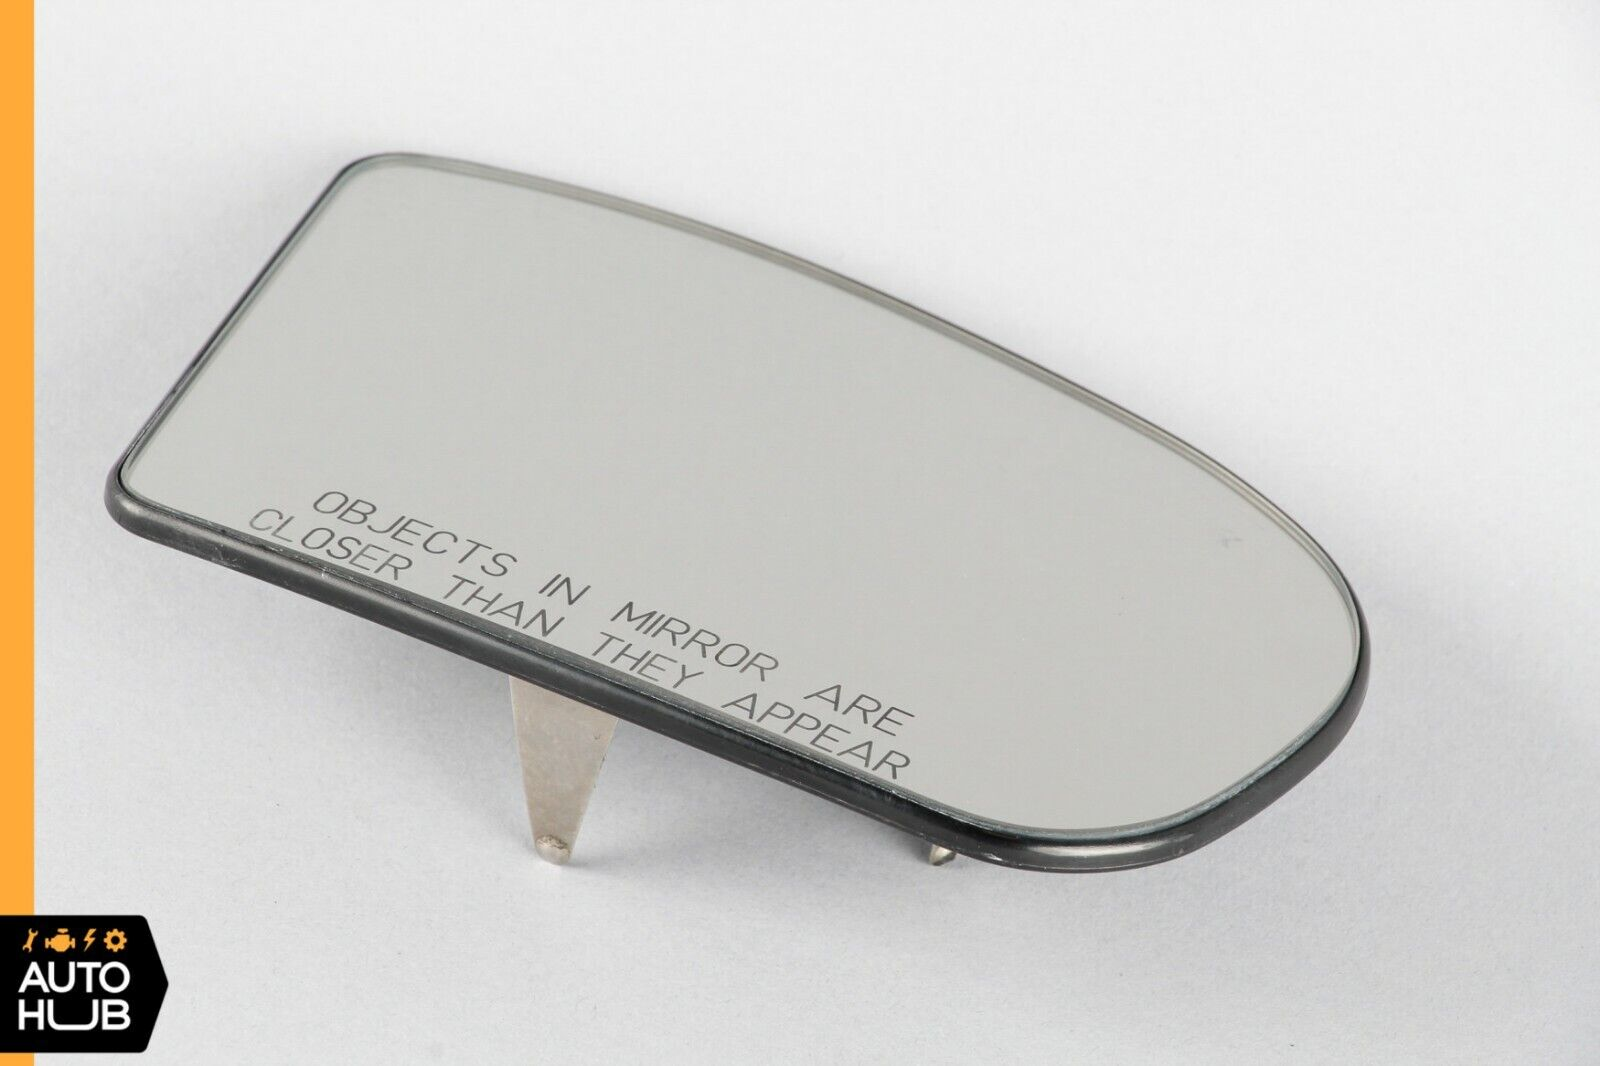 Used 2006 Mercedes-Benz E55 AMG Exterior Mirrors for Sale